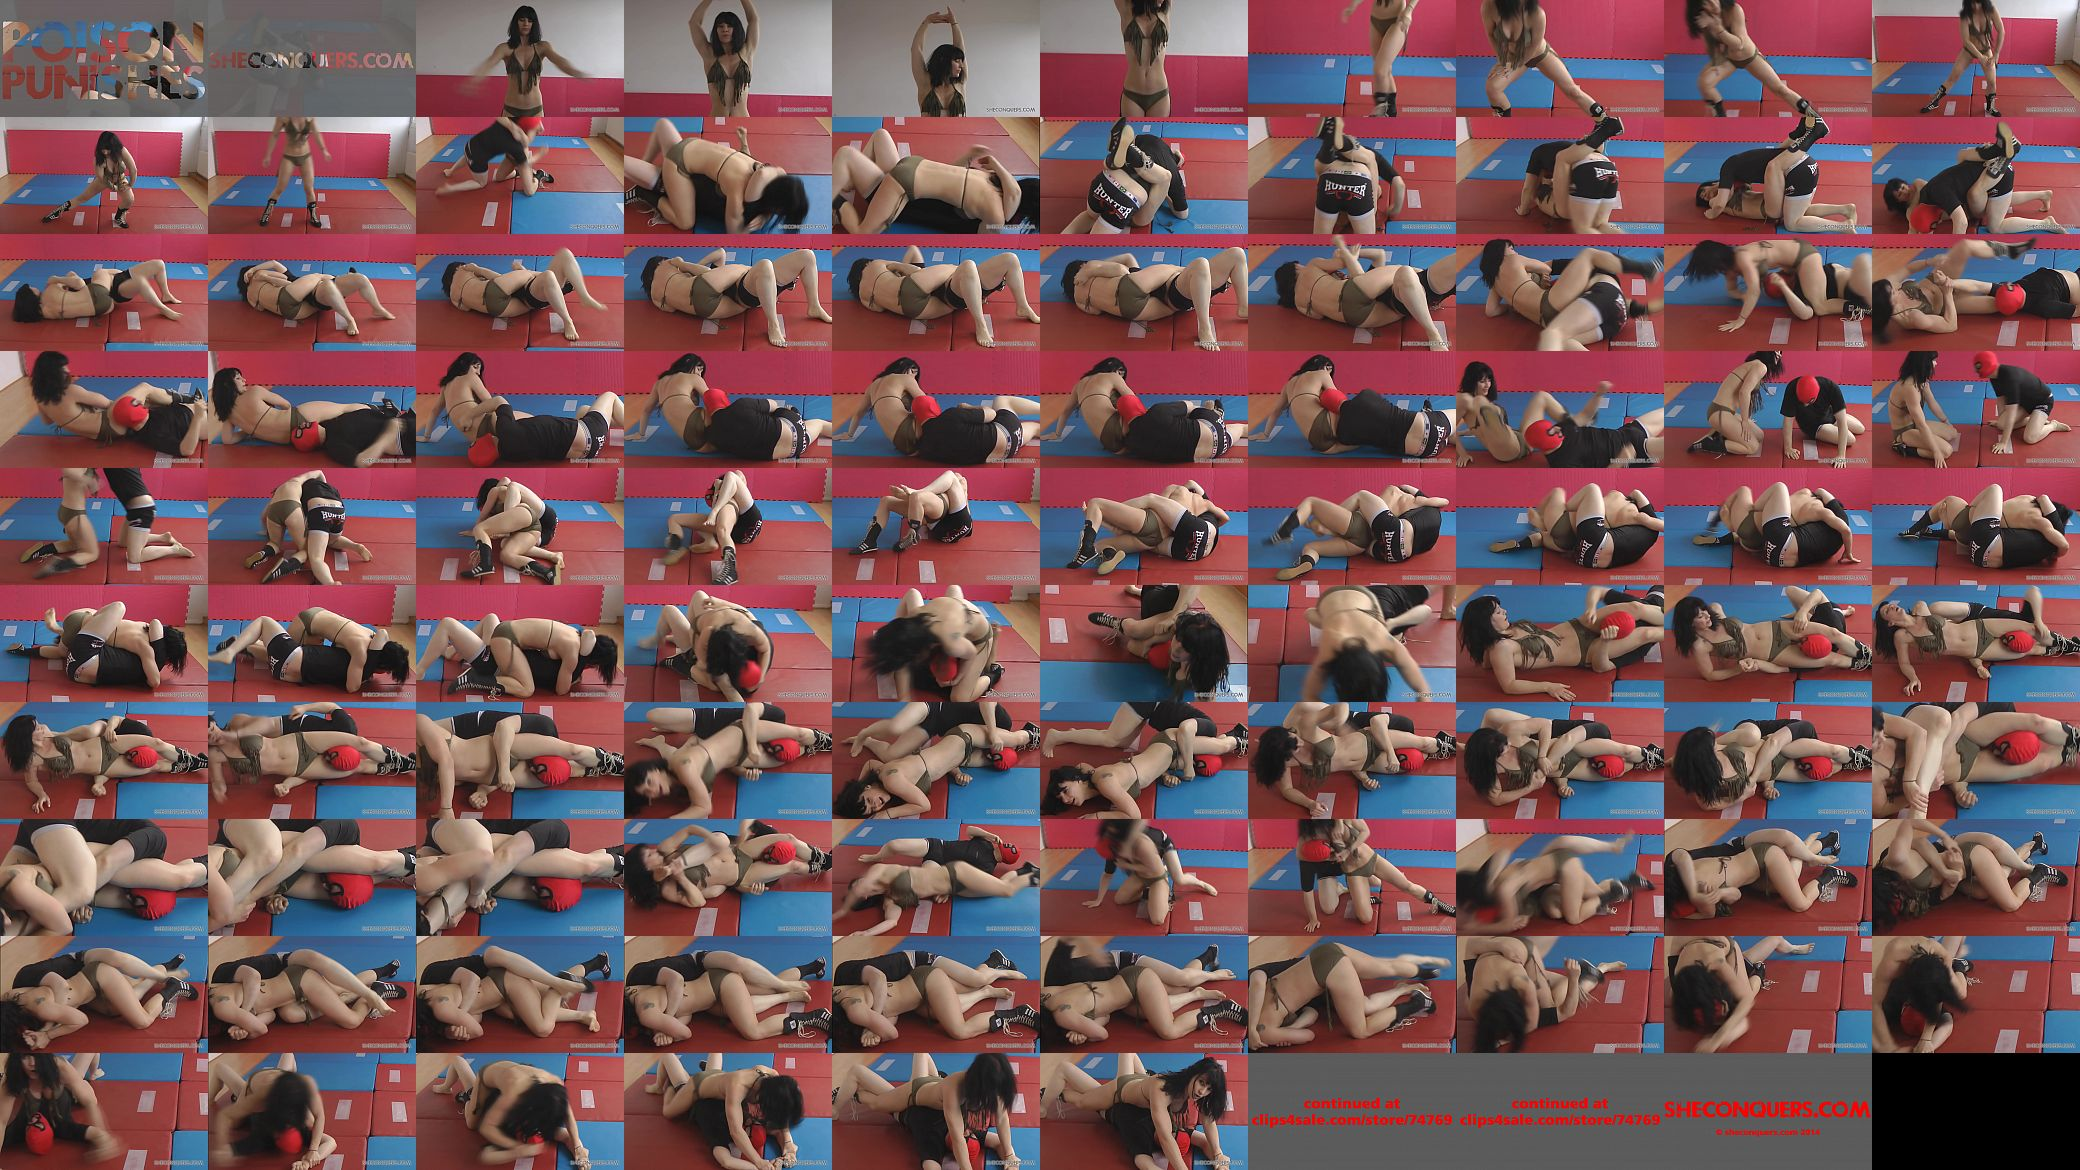 Face covered mixed wrestling porn movies babe